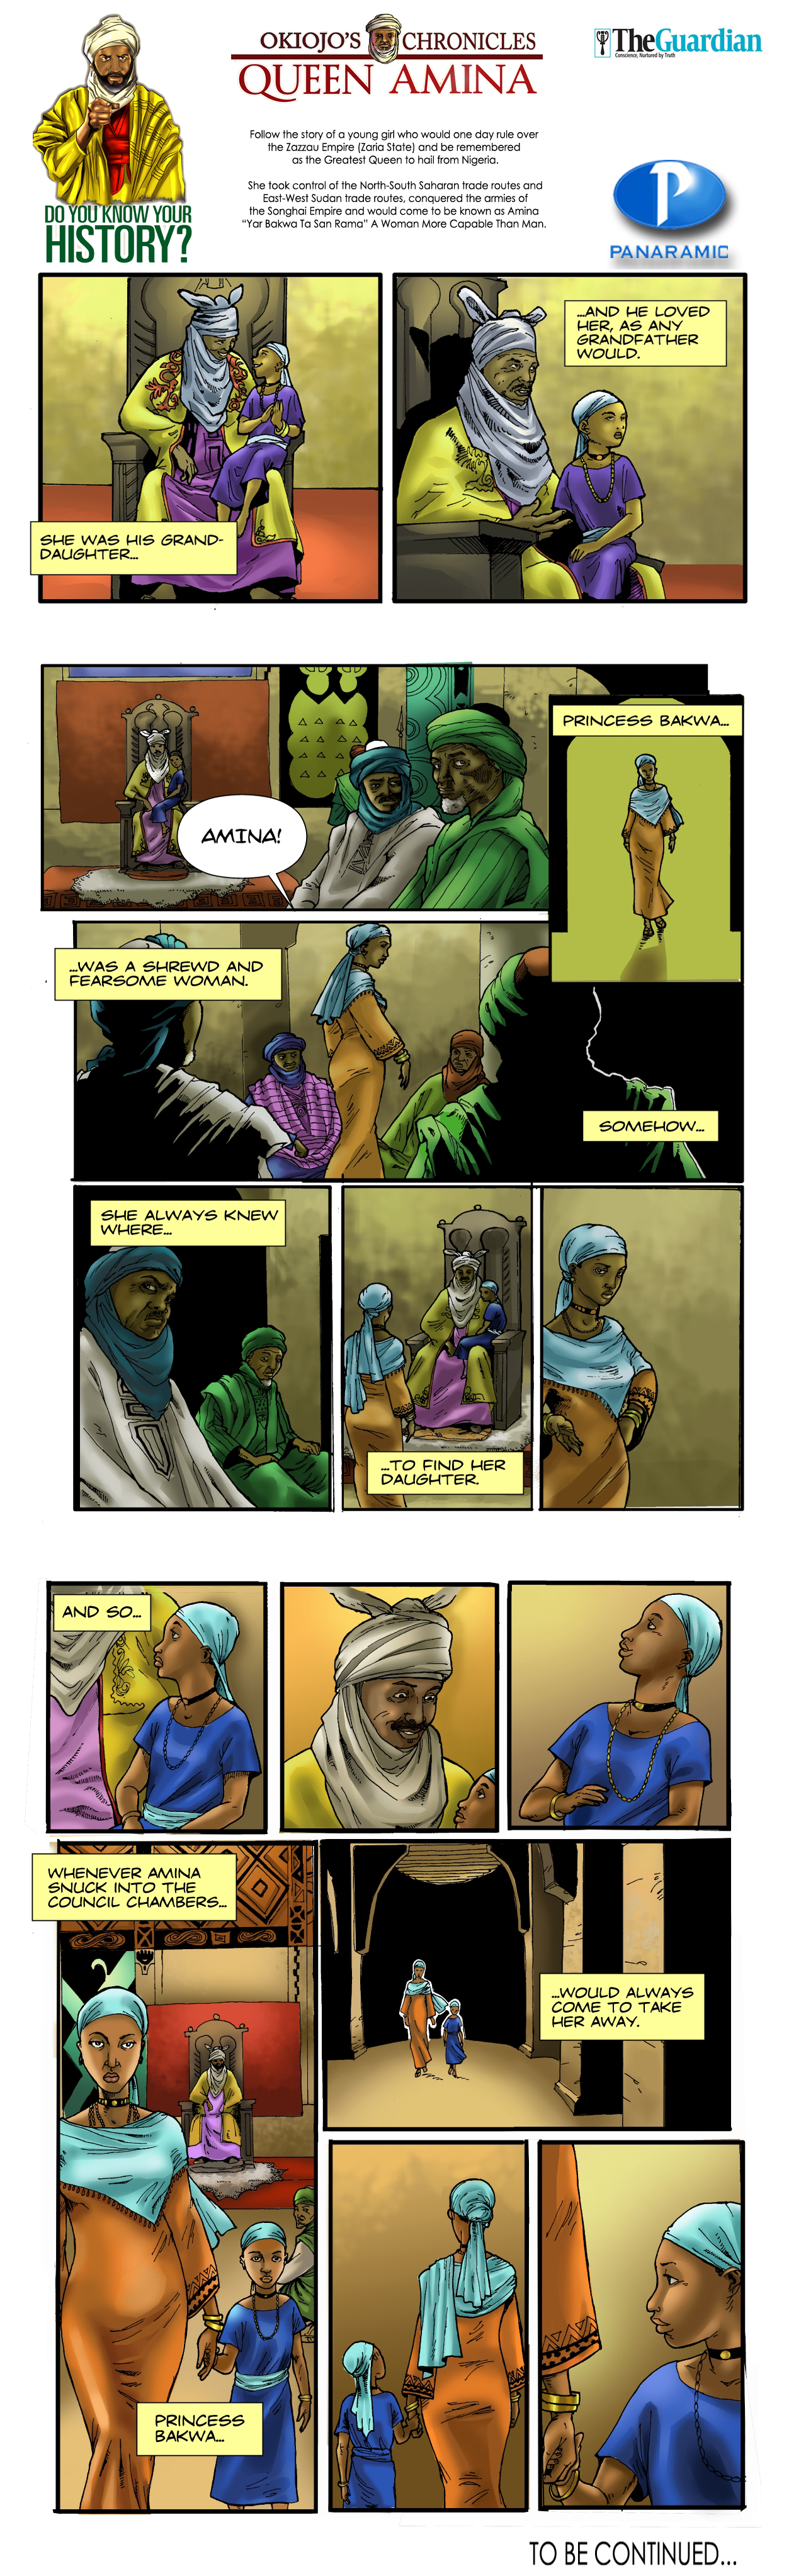 Queen Amina (Part 1) 4